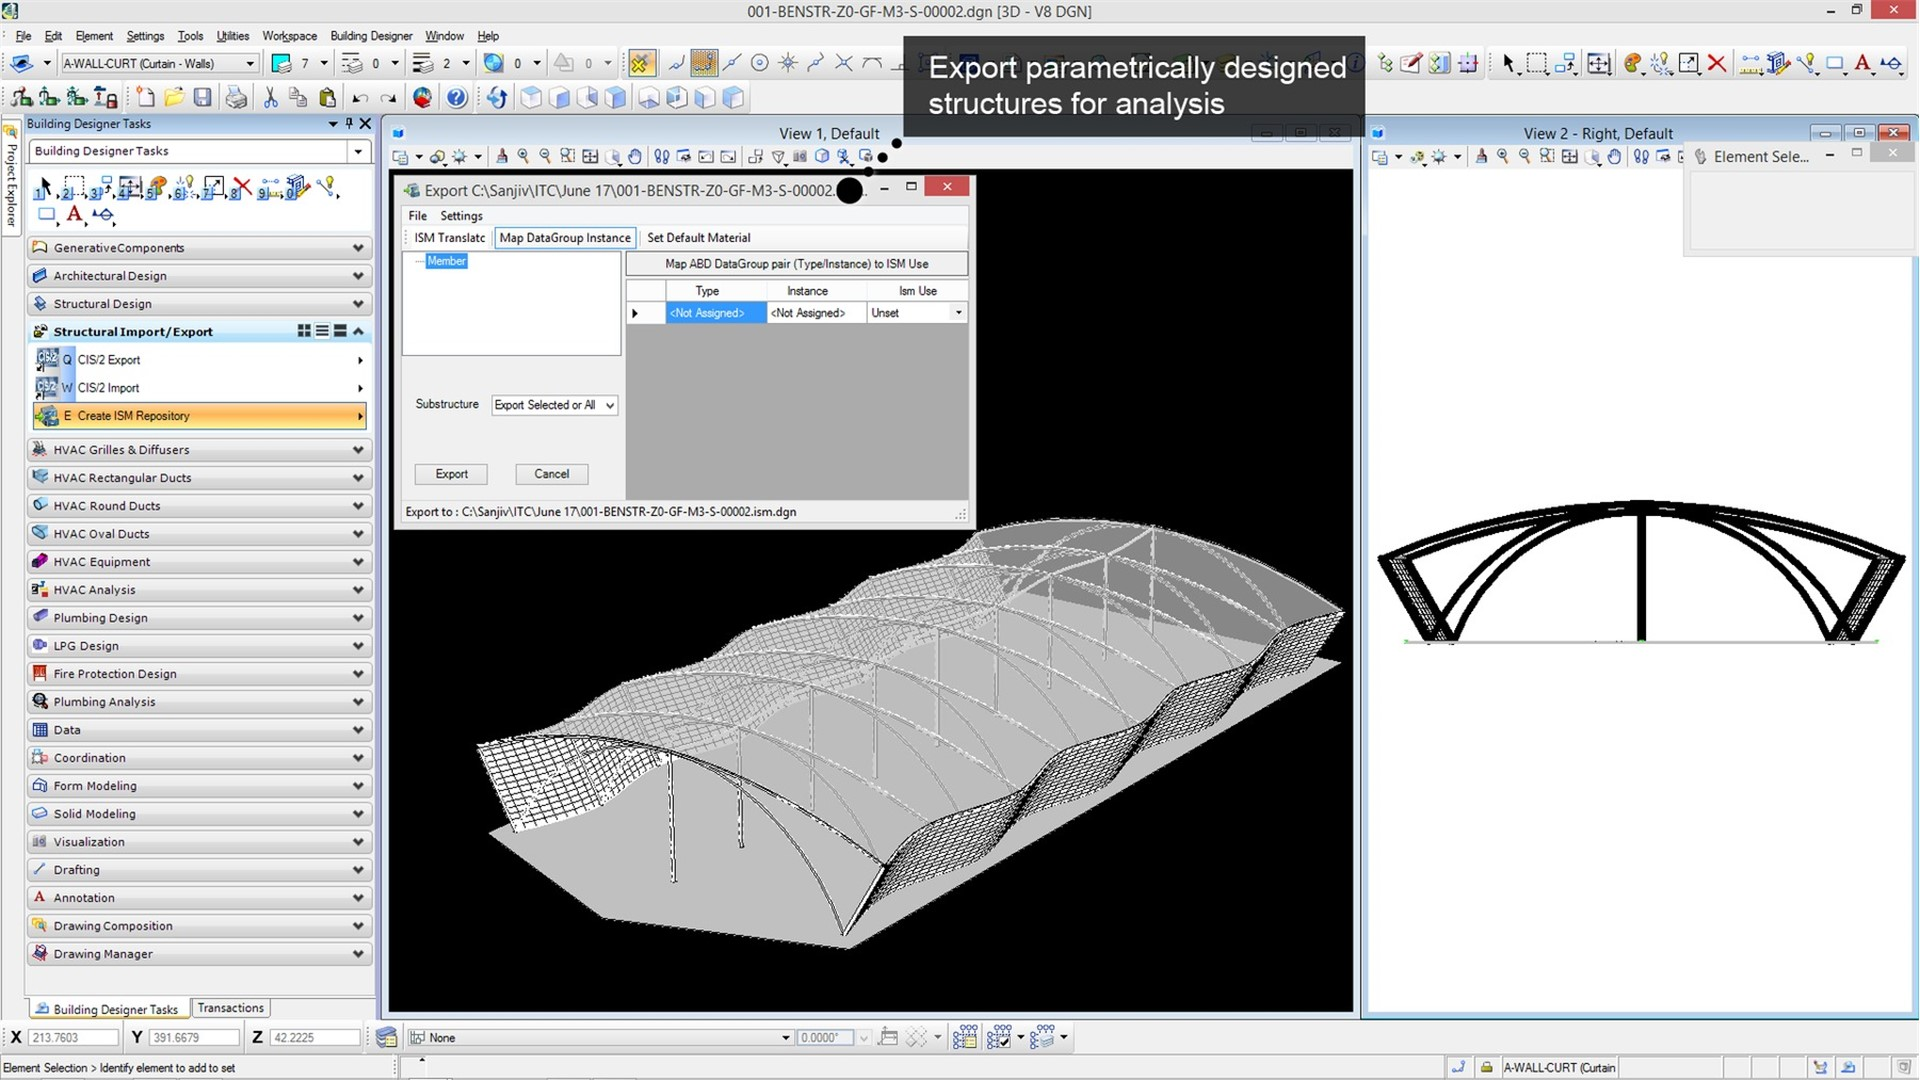 Integrate with building design and analysis software_EDITED